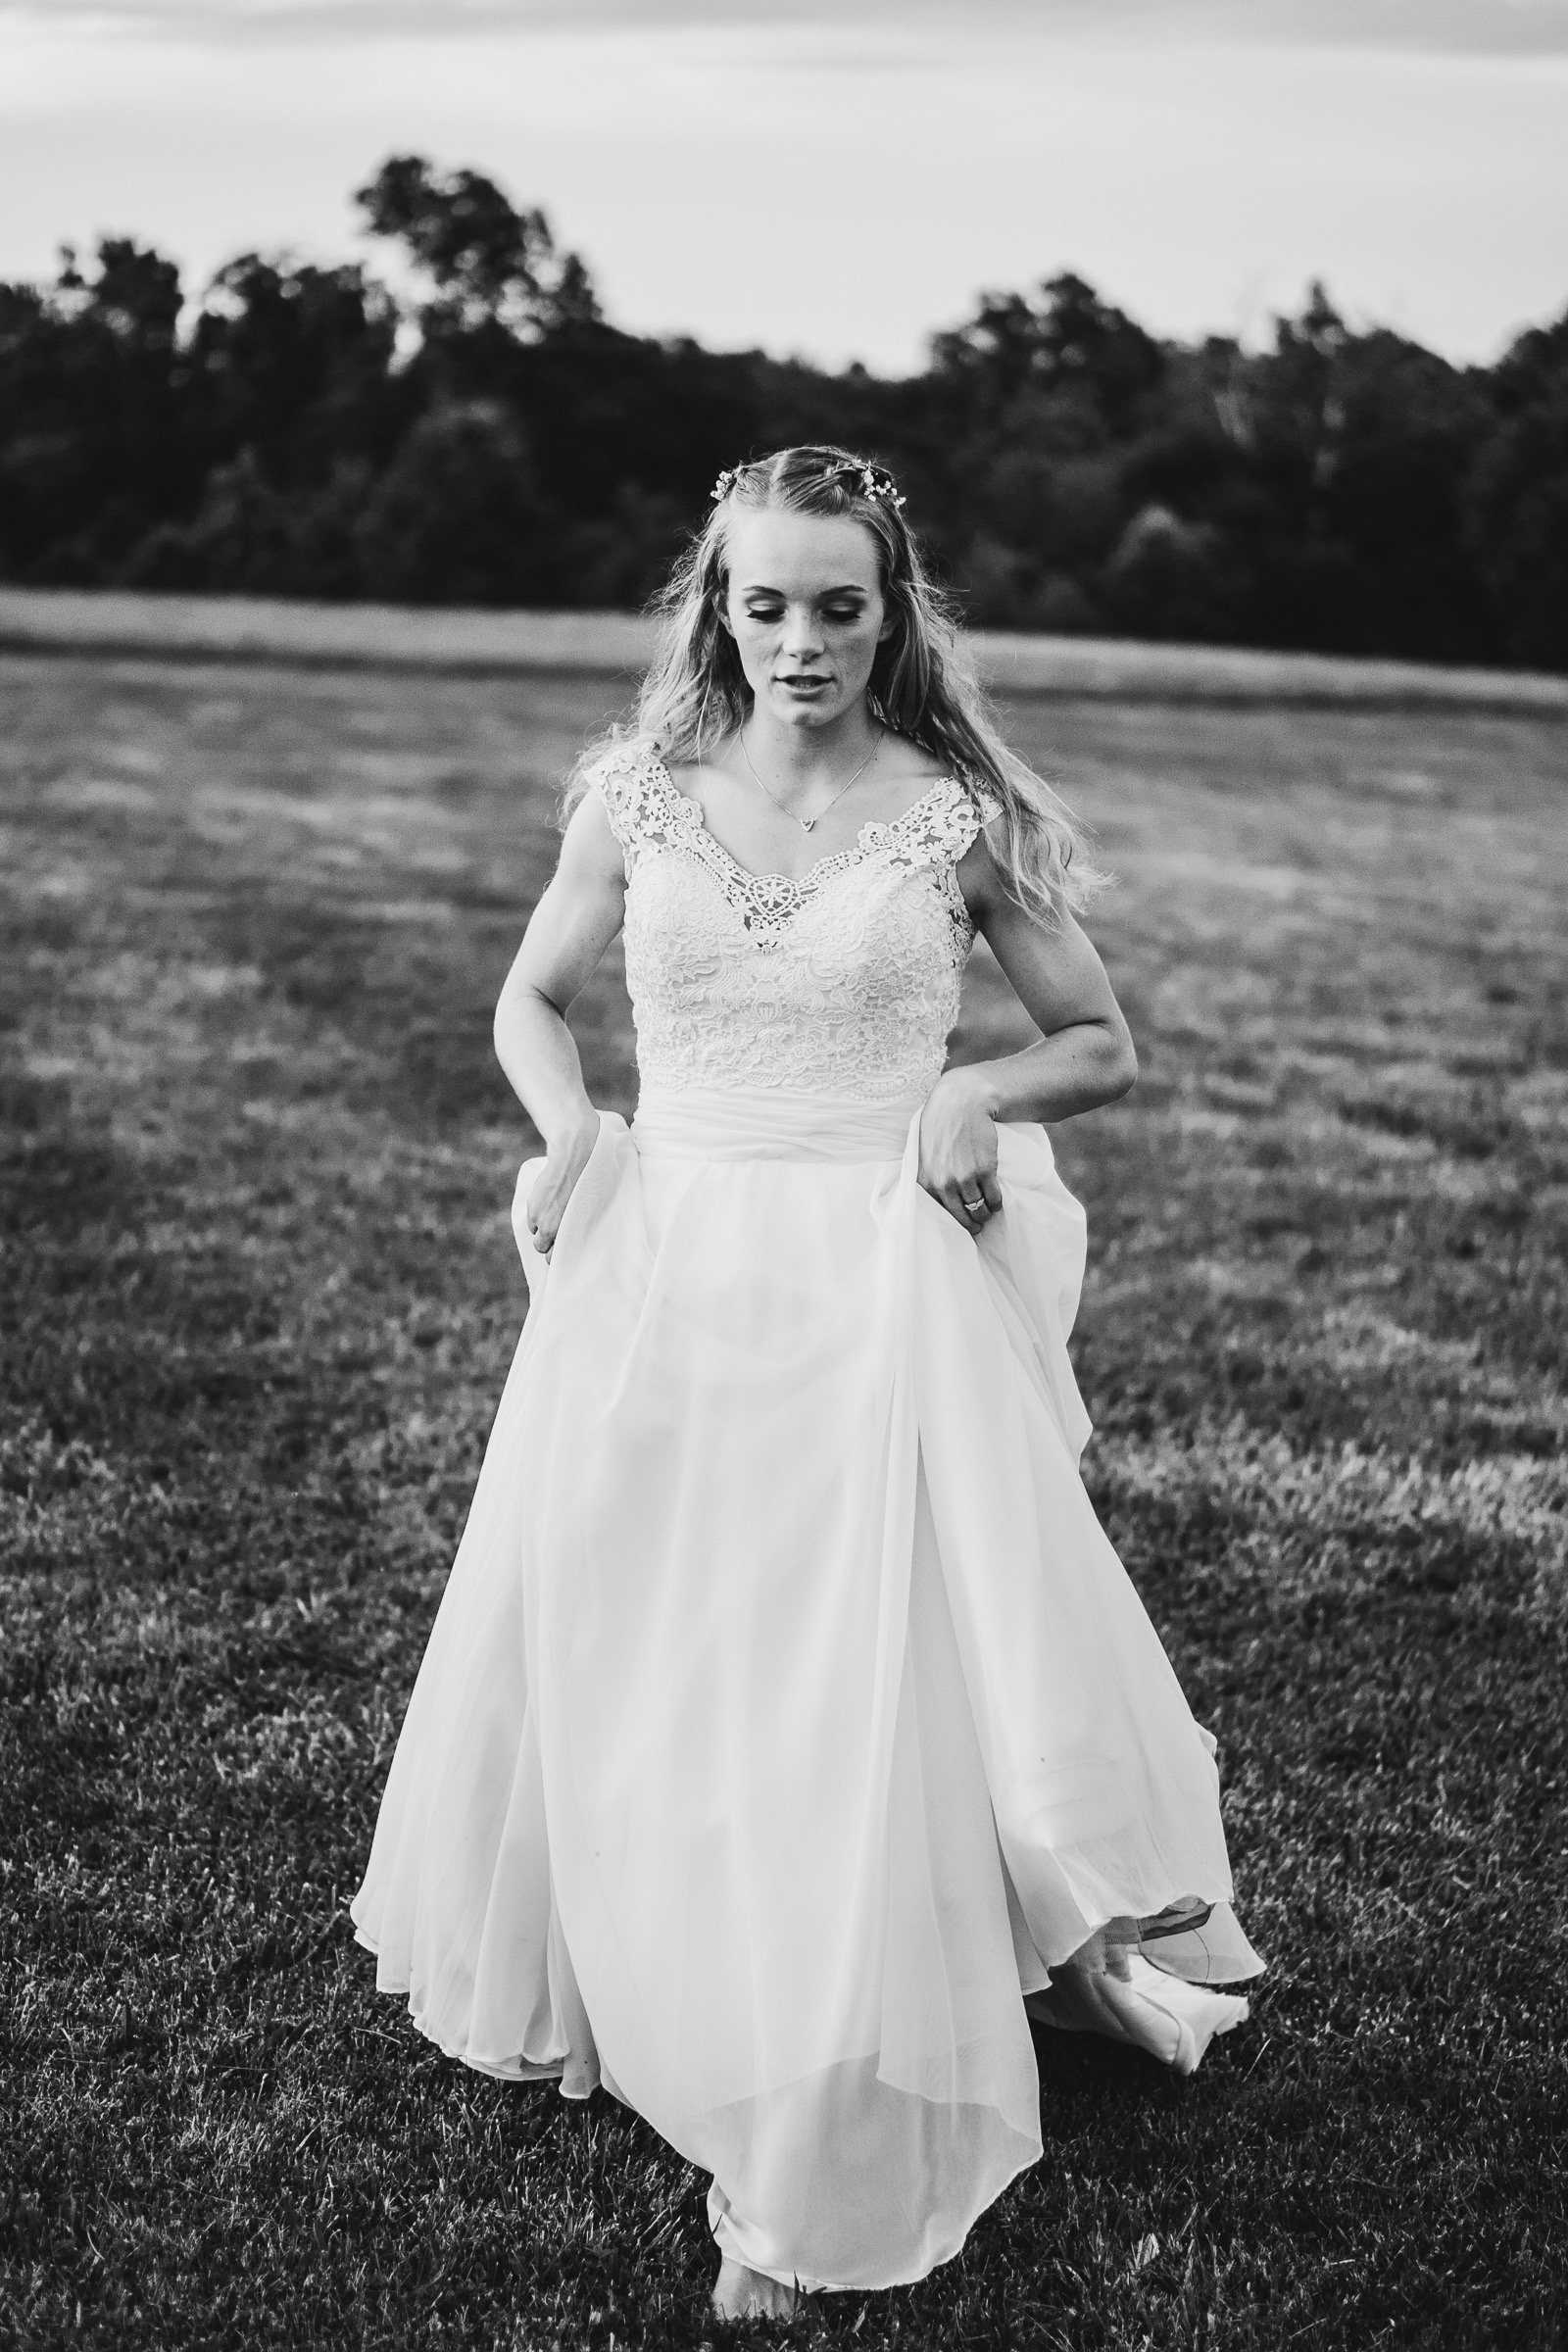 Michael and Abigael Virginia Warehouse Industrial Boho Wedding in Blue and Ivory by Jonathan Hannah Photography-39.jpg